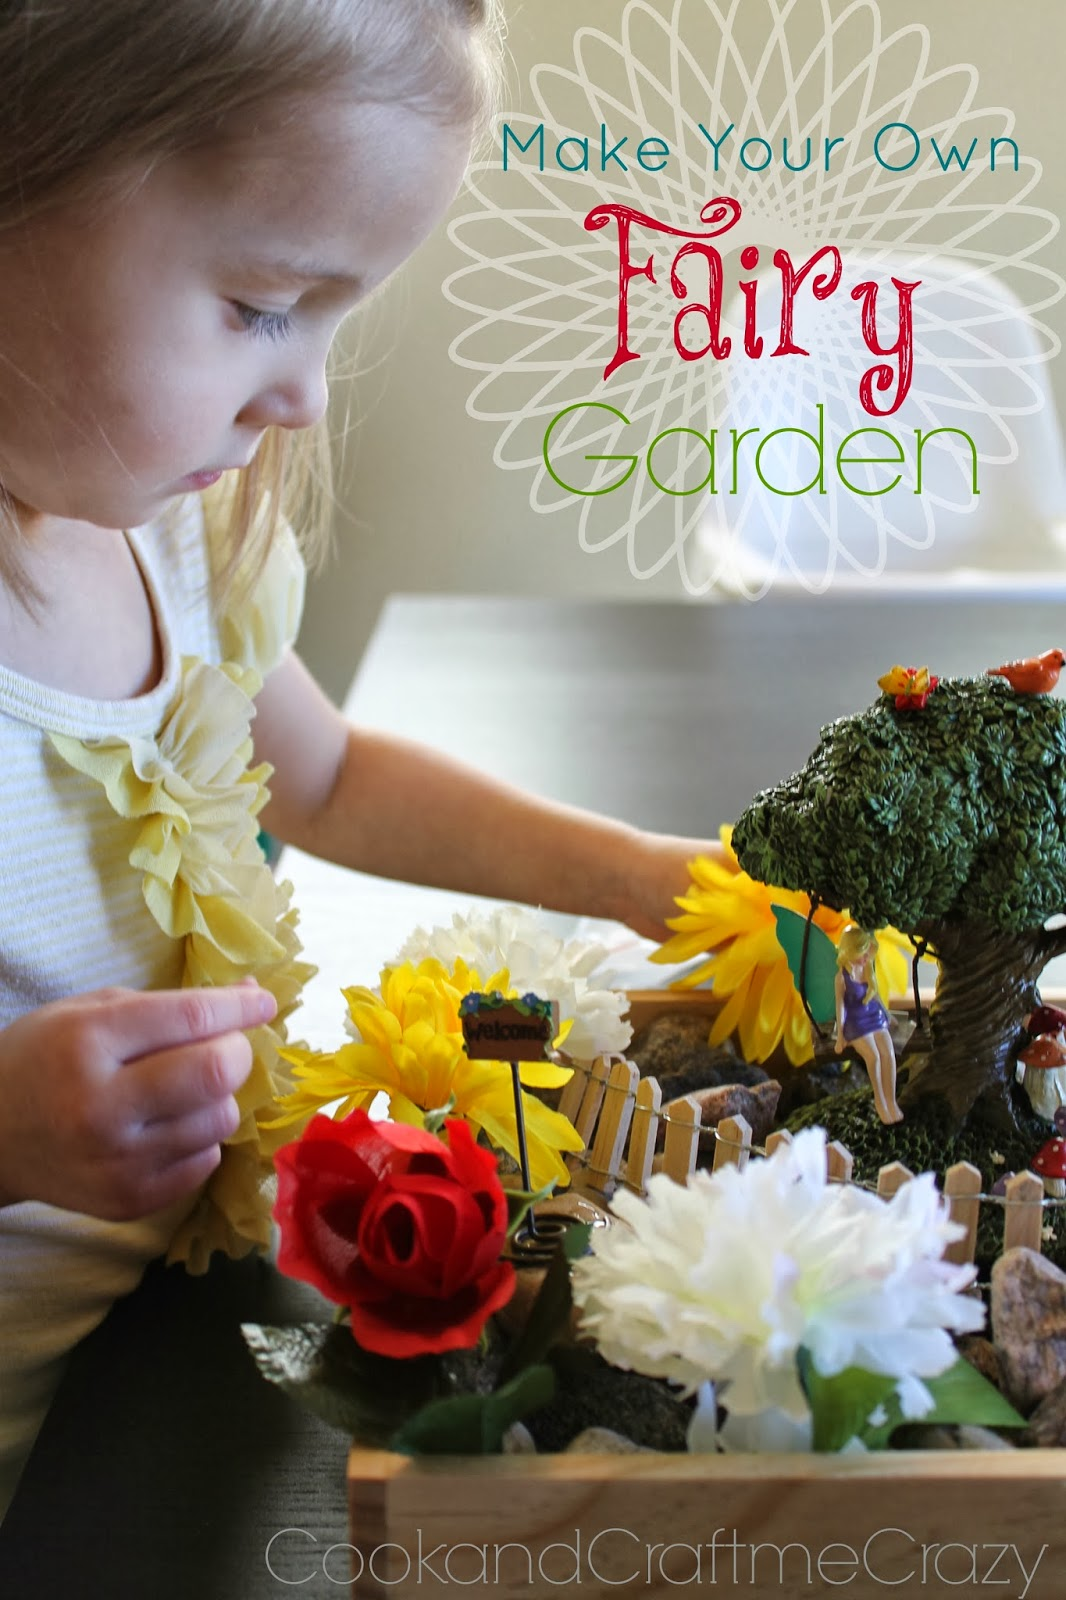 Cook and Craft Me Crazy Make your own Fairy Garden